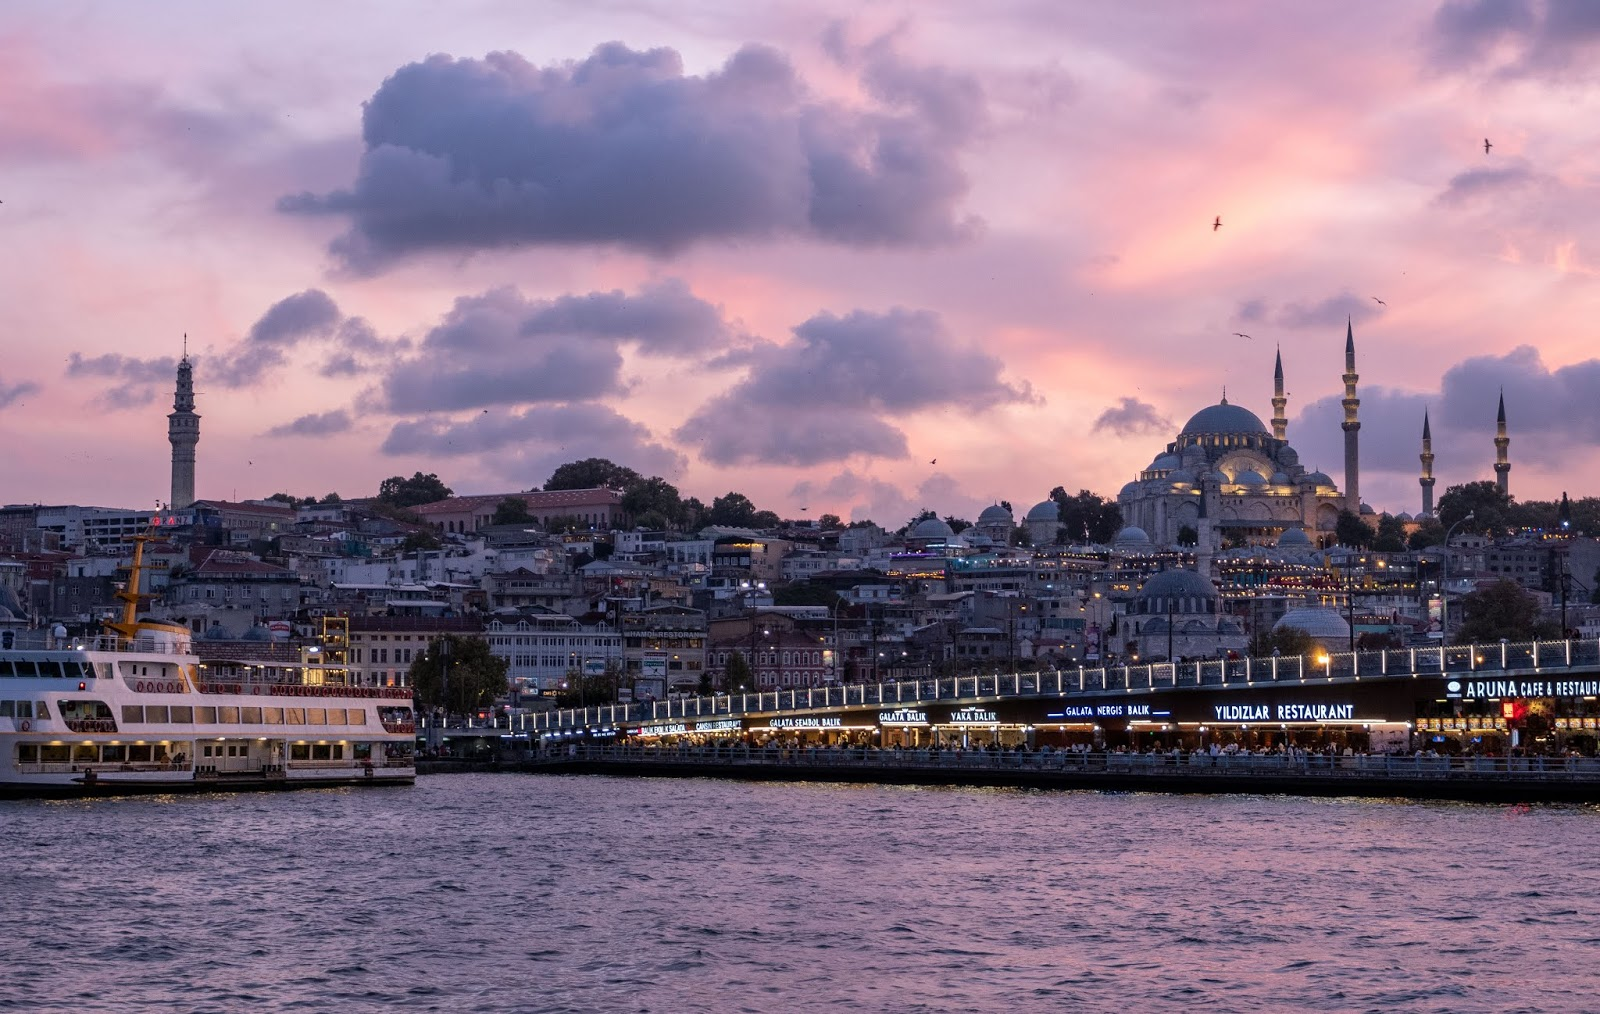 Watching the sunset in Istanbul, Turkey